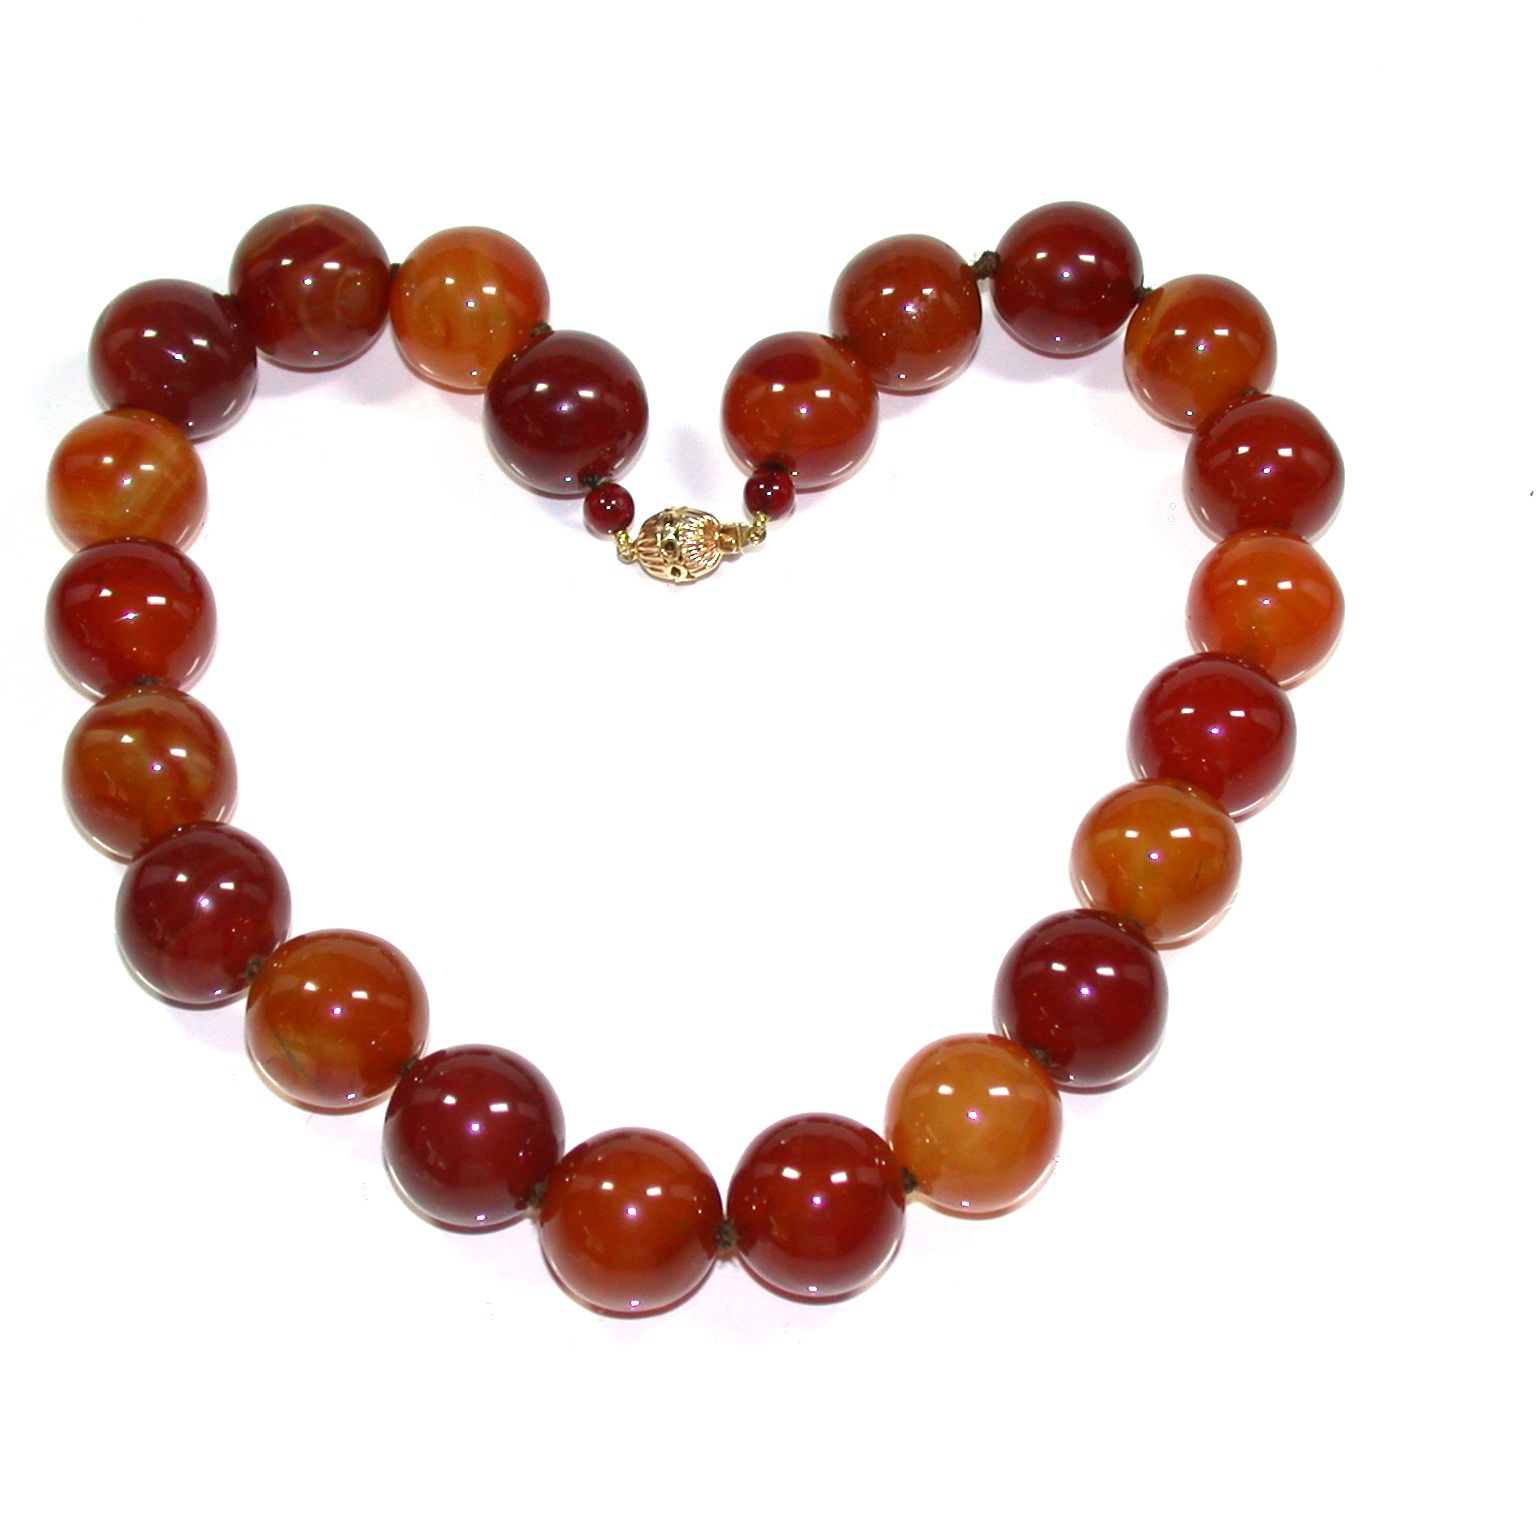 Fantastic Carnelian Bead Necklace with a 14kt yellow gold clasp perfect for everyday over a turtleneck, with a tee shirt or as an accessory with that little summer dress. You will wear this every season and with the warm earth tones, this goes with everything you already own! Twenty two (22) beads measuring 1/2 inch each and kept closed by a very secure clasp.